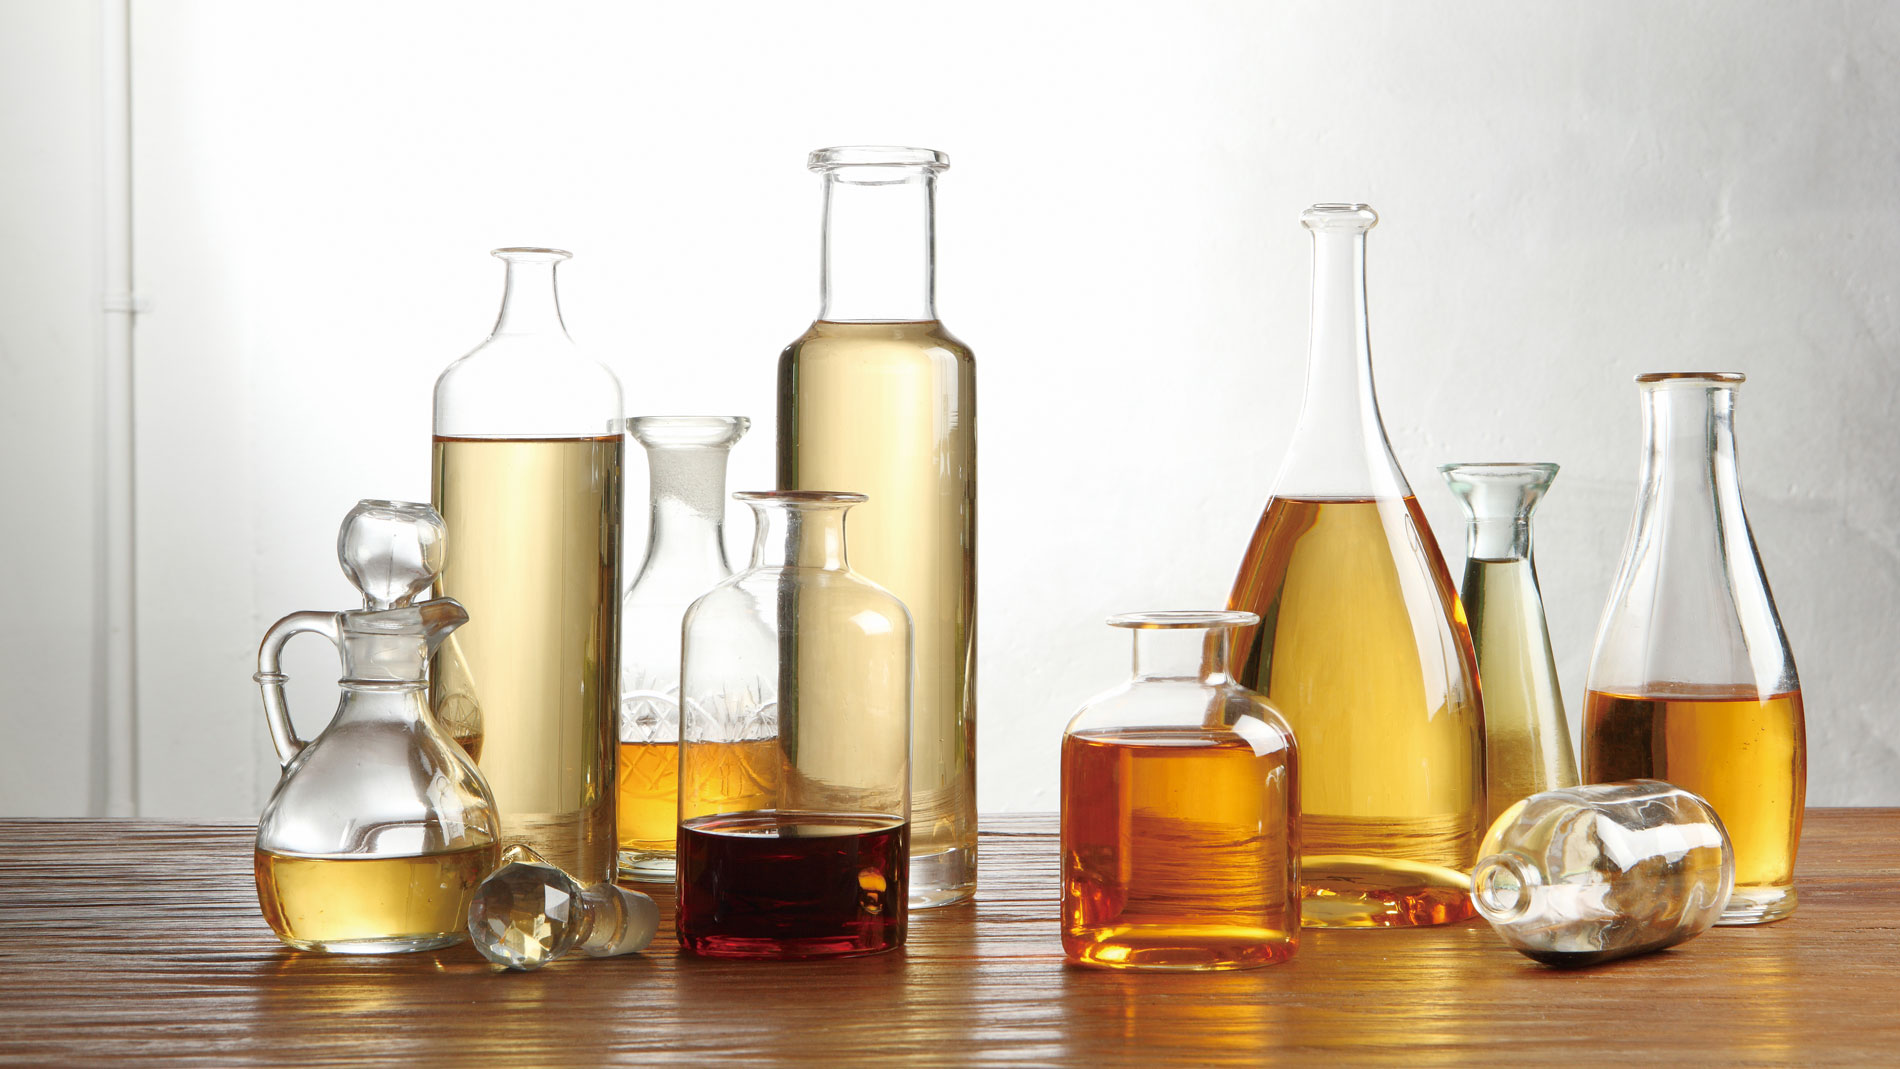 The 11 Essential Kinds of Vinegar